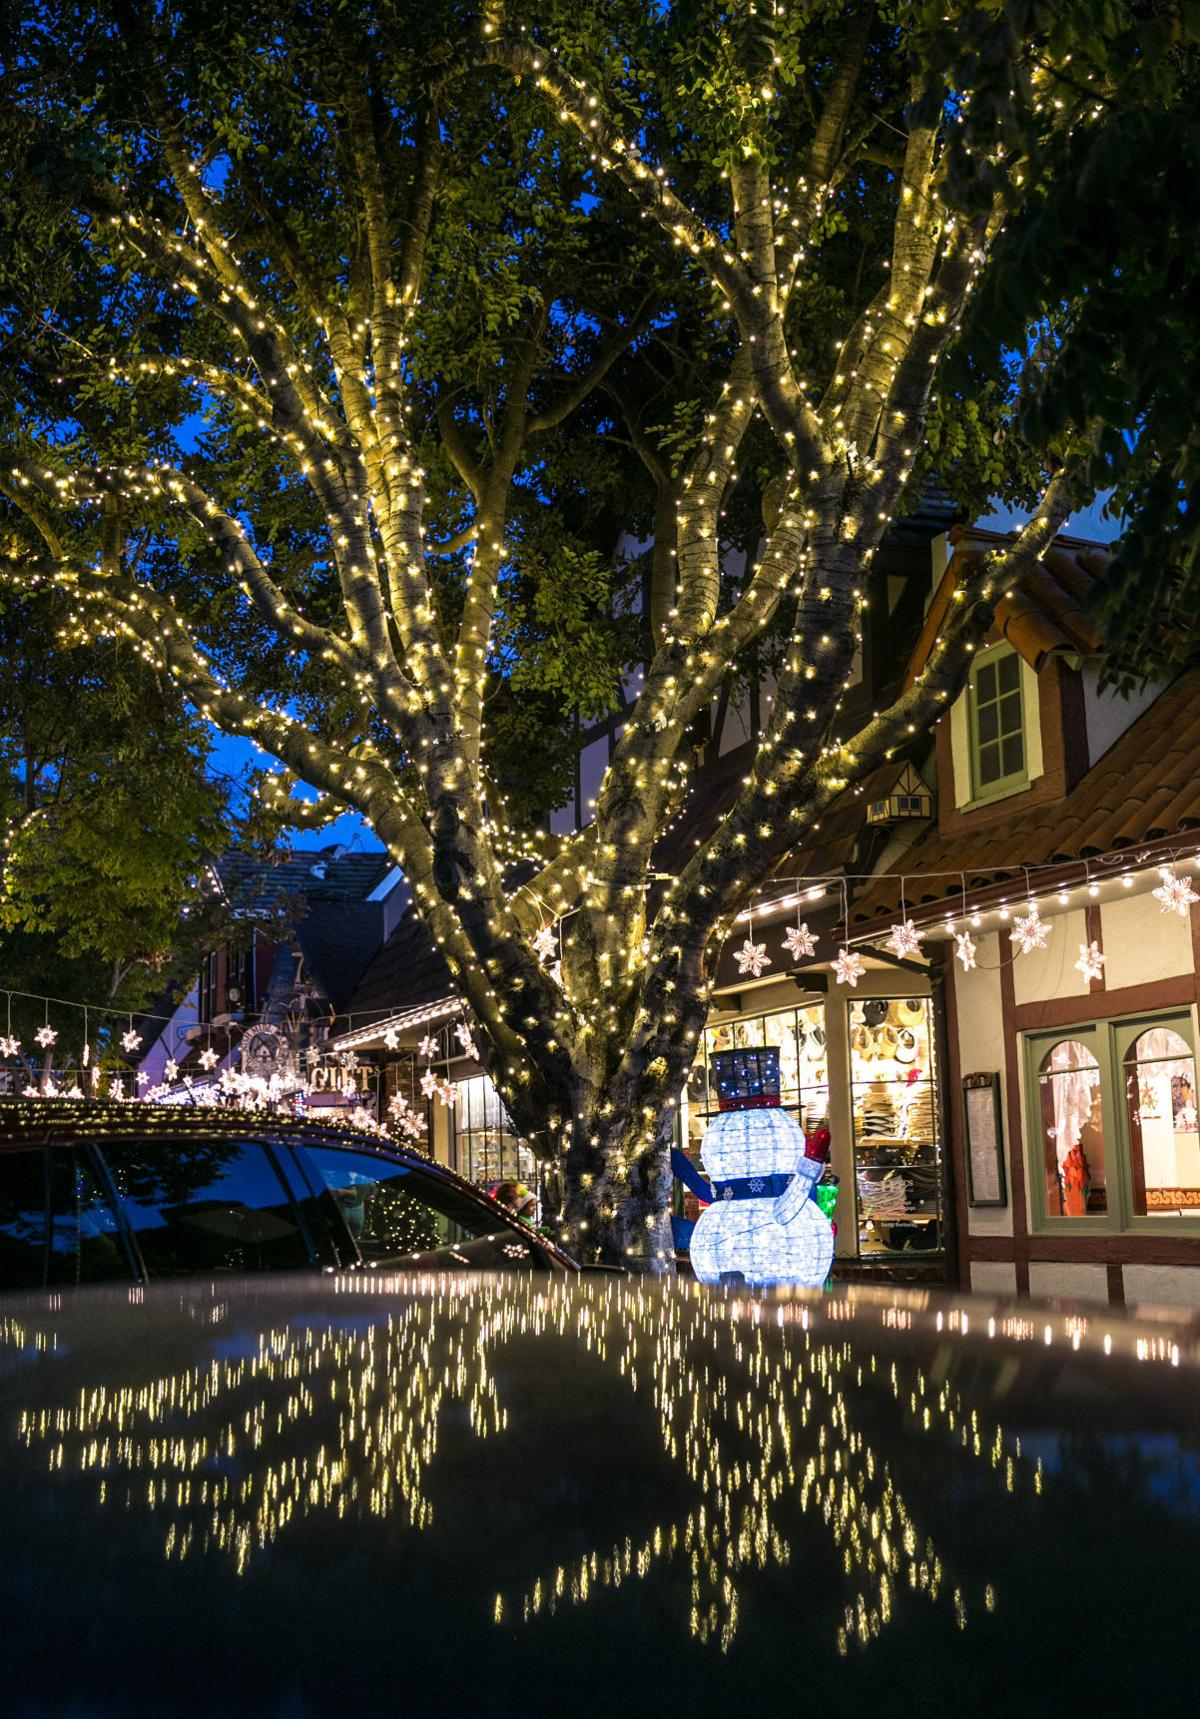 Solvang Christmas 2020 Solvang named 'Best Christmas Town' by Reader's Digest and New